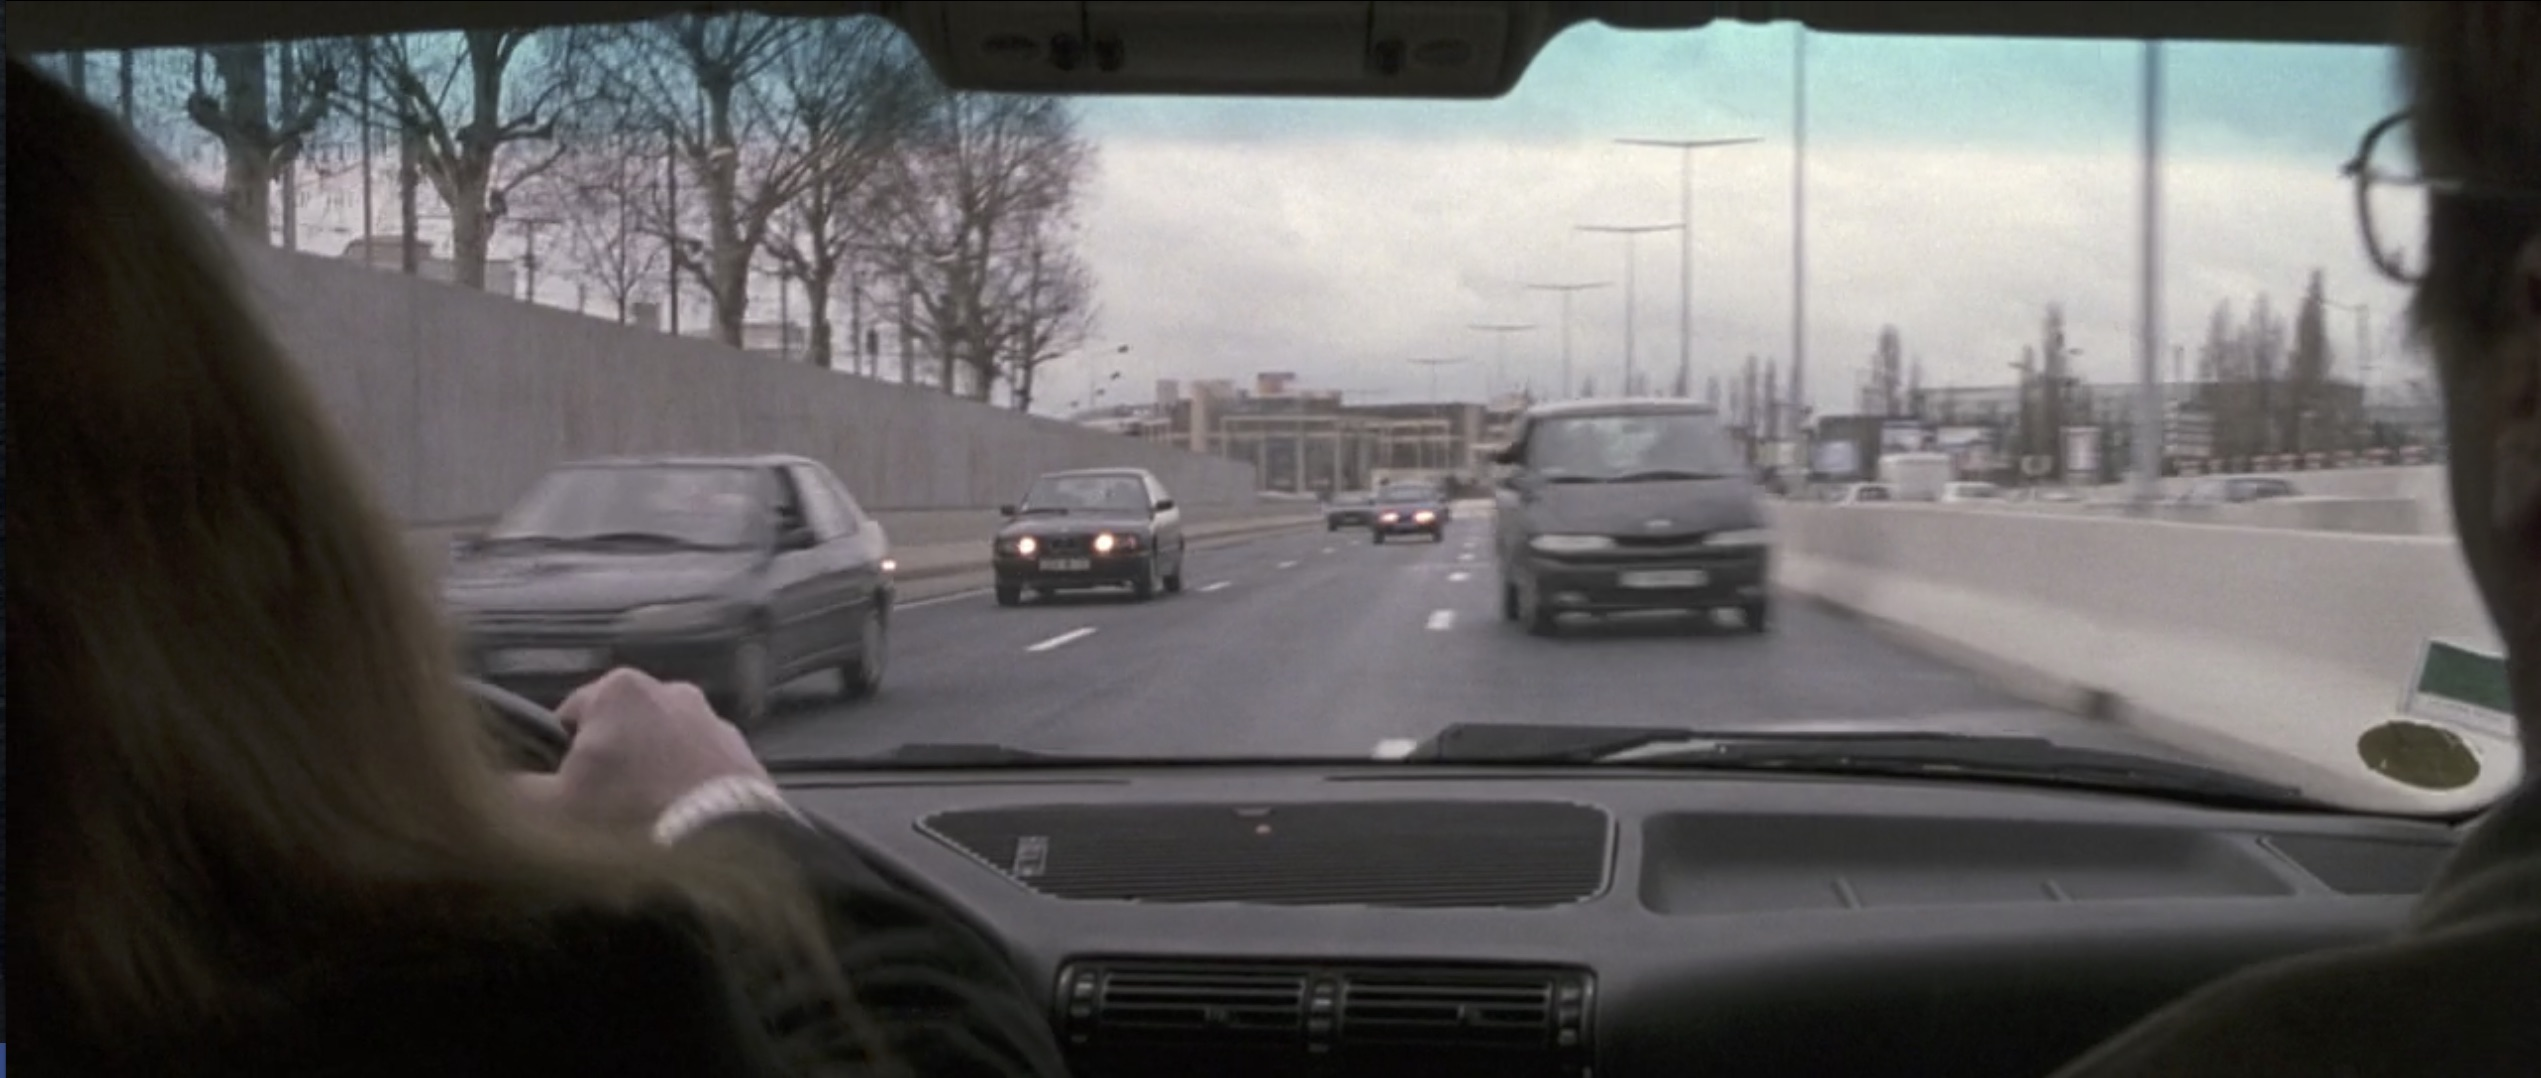 Ronin driving on the wrong side of the road